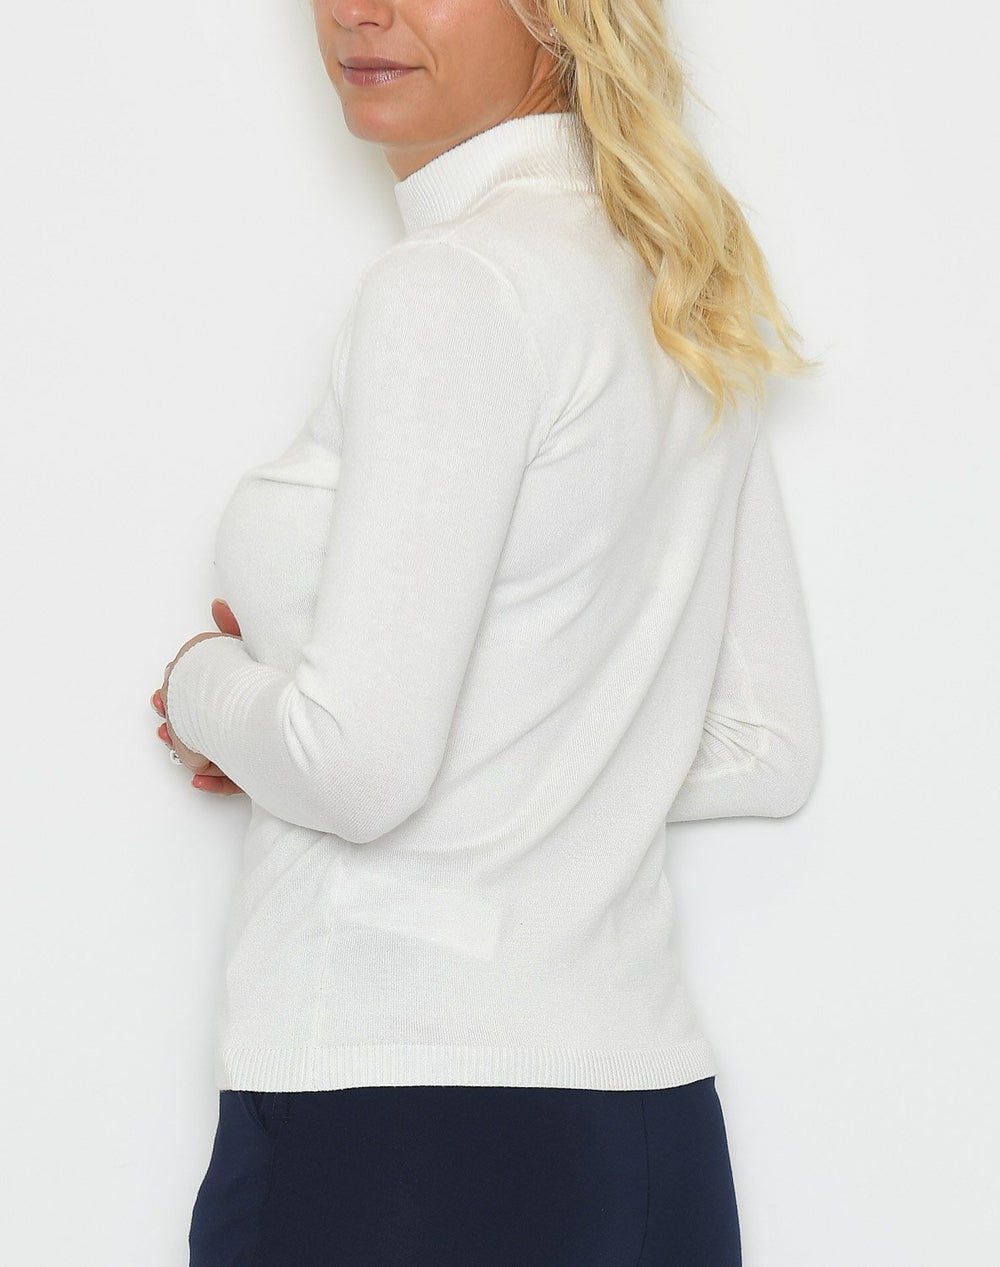 Soft Rebels Zara turtleneck bluse off white - Online-Mode